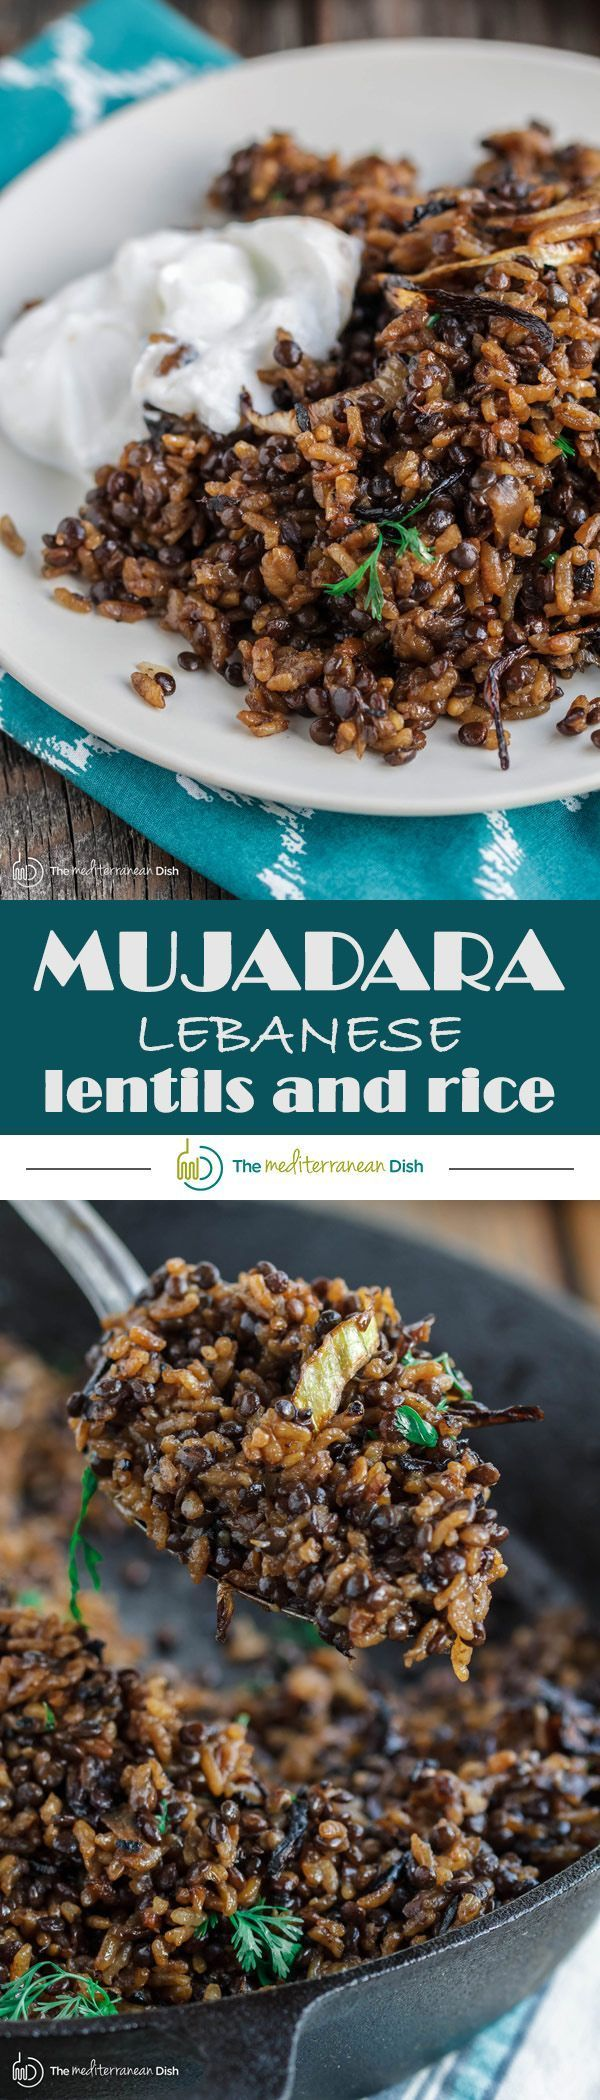 24 best middle eastern images on Pinterest | Arabic food, Middle ...